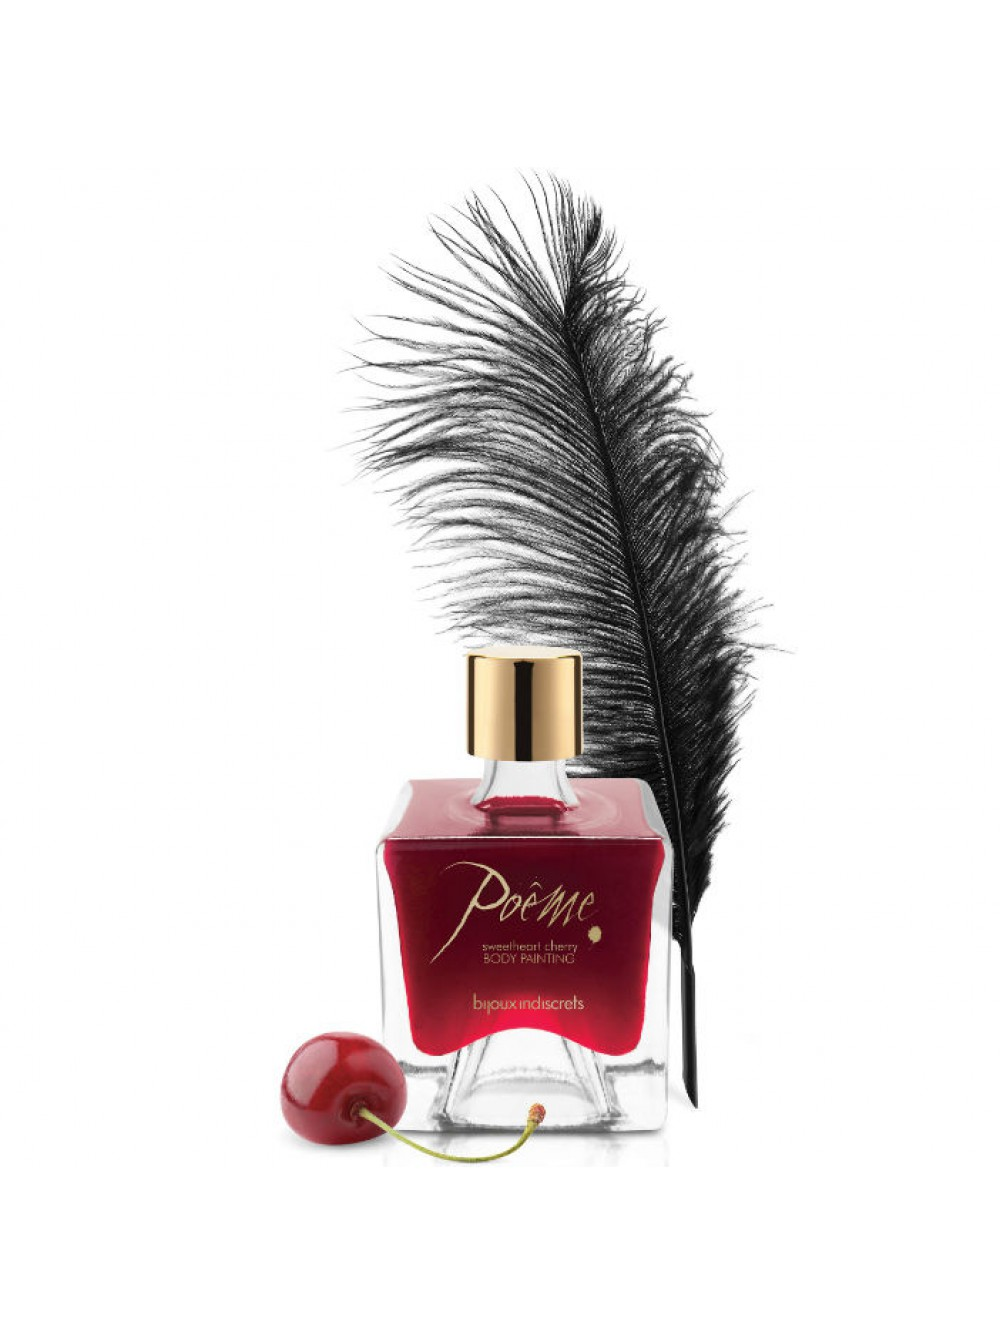 POEME BODY PAINTING LIMITED EDITION SWEETHEART CHERRY 8436562010256